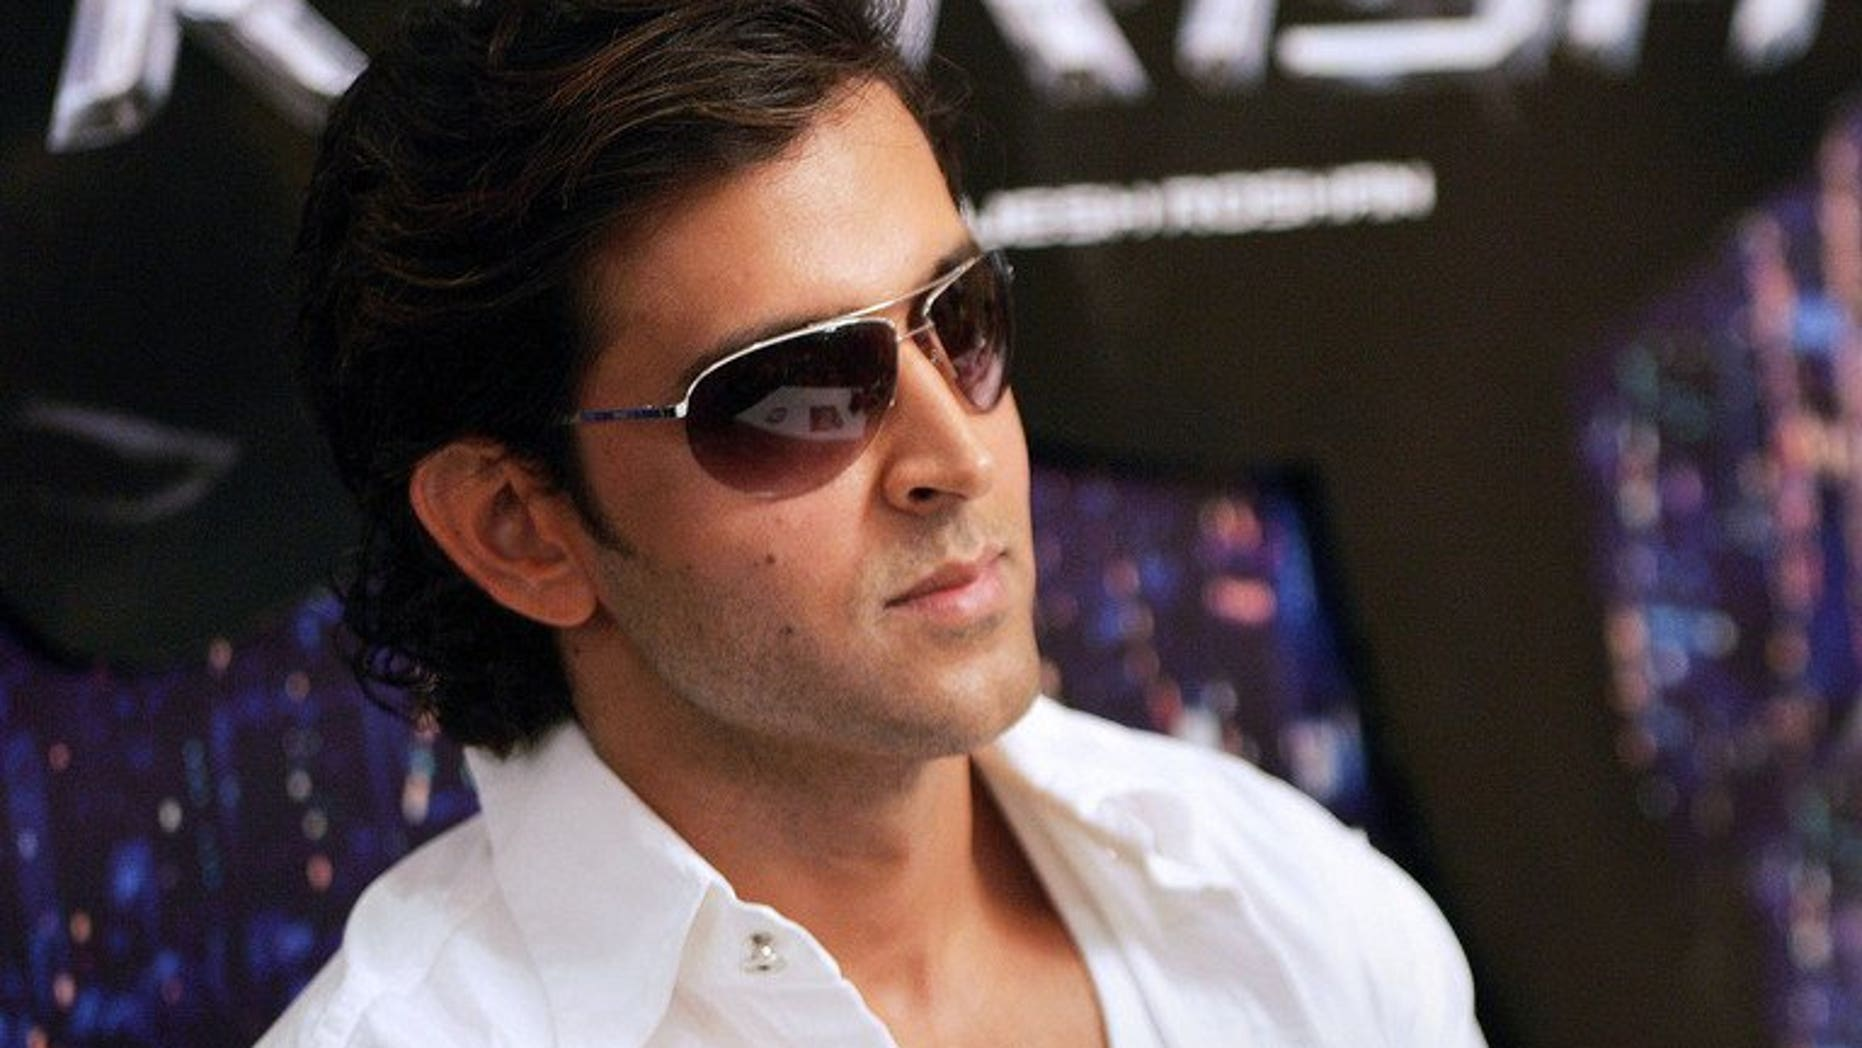 """In this file photo, Indian actor Hrithik Roshan is seen during a press conference held to launch merchandise products of the movie 'Krrish', in Mumbai, on June 12, 2006. """"Krrish 3"""" will be released in November 2013 during Diwali festival. The first two movies in the Krrish series drew huge turnouts at the box office."""